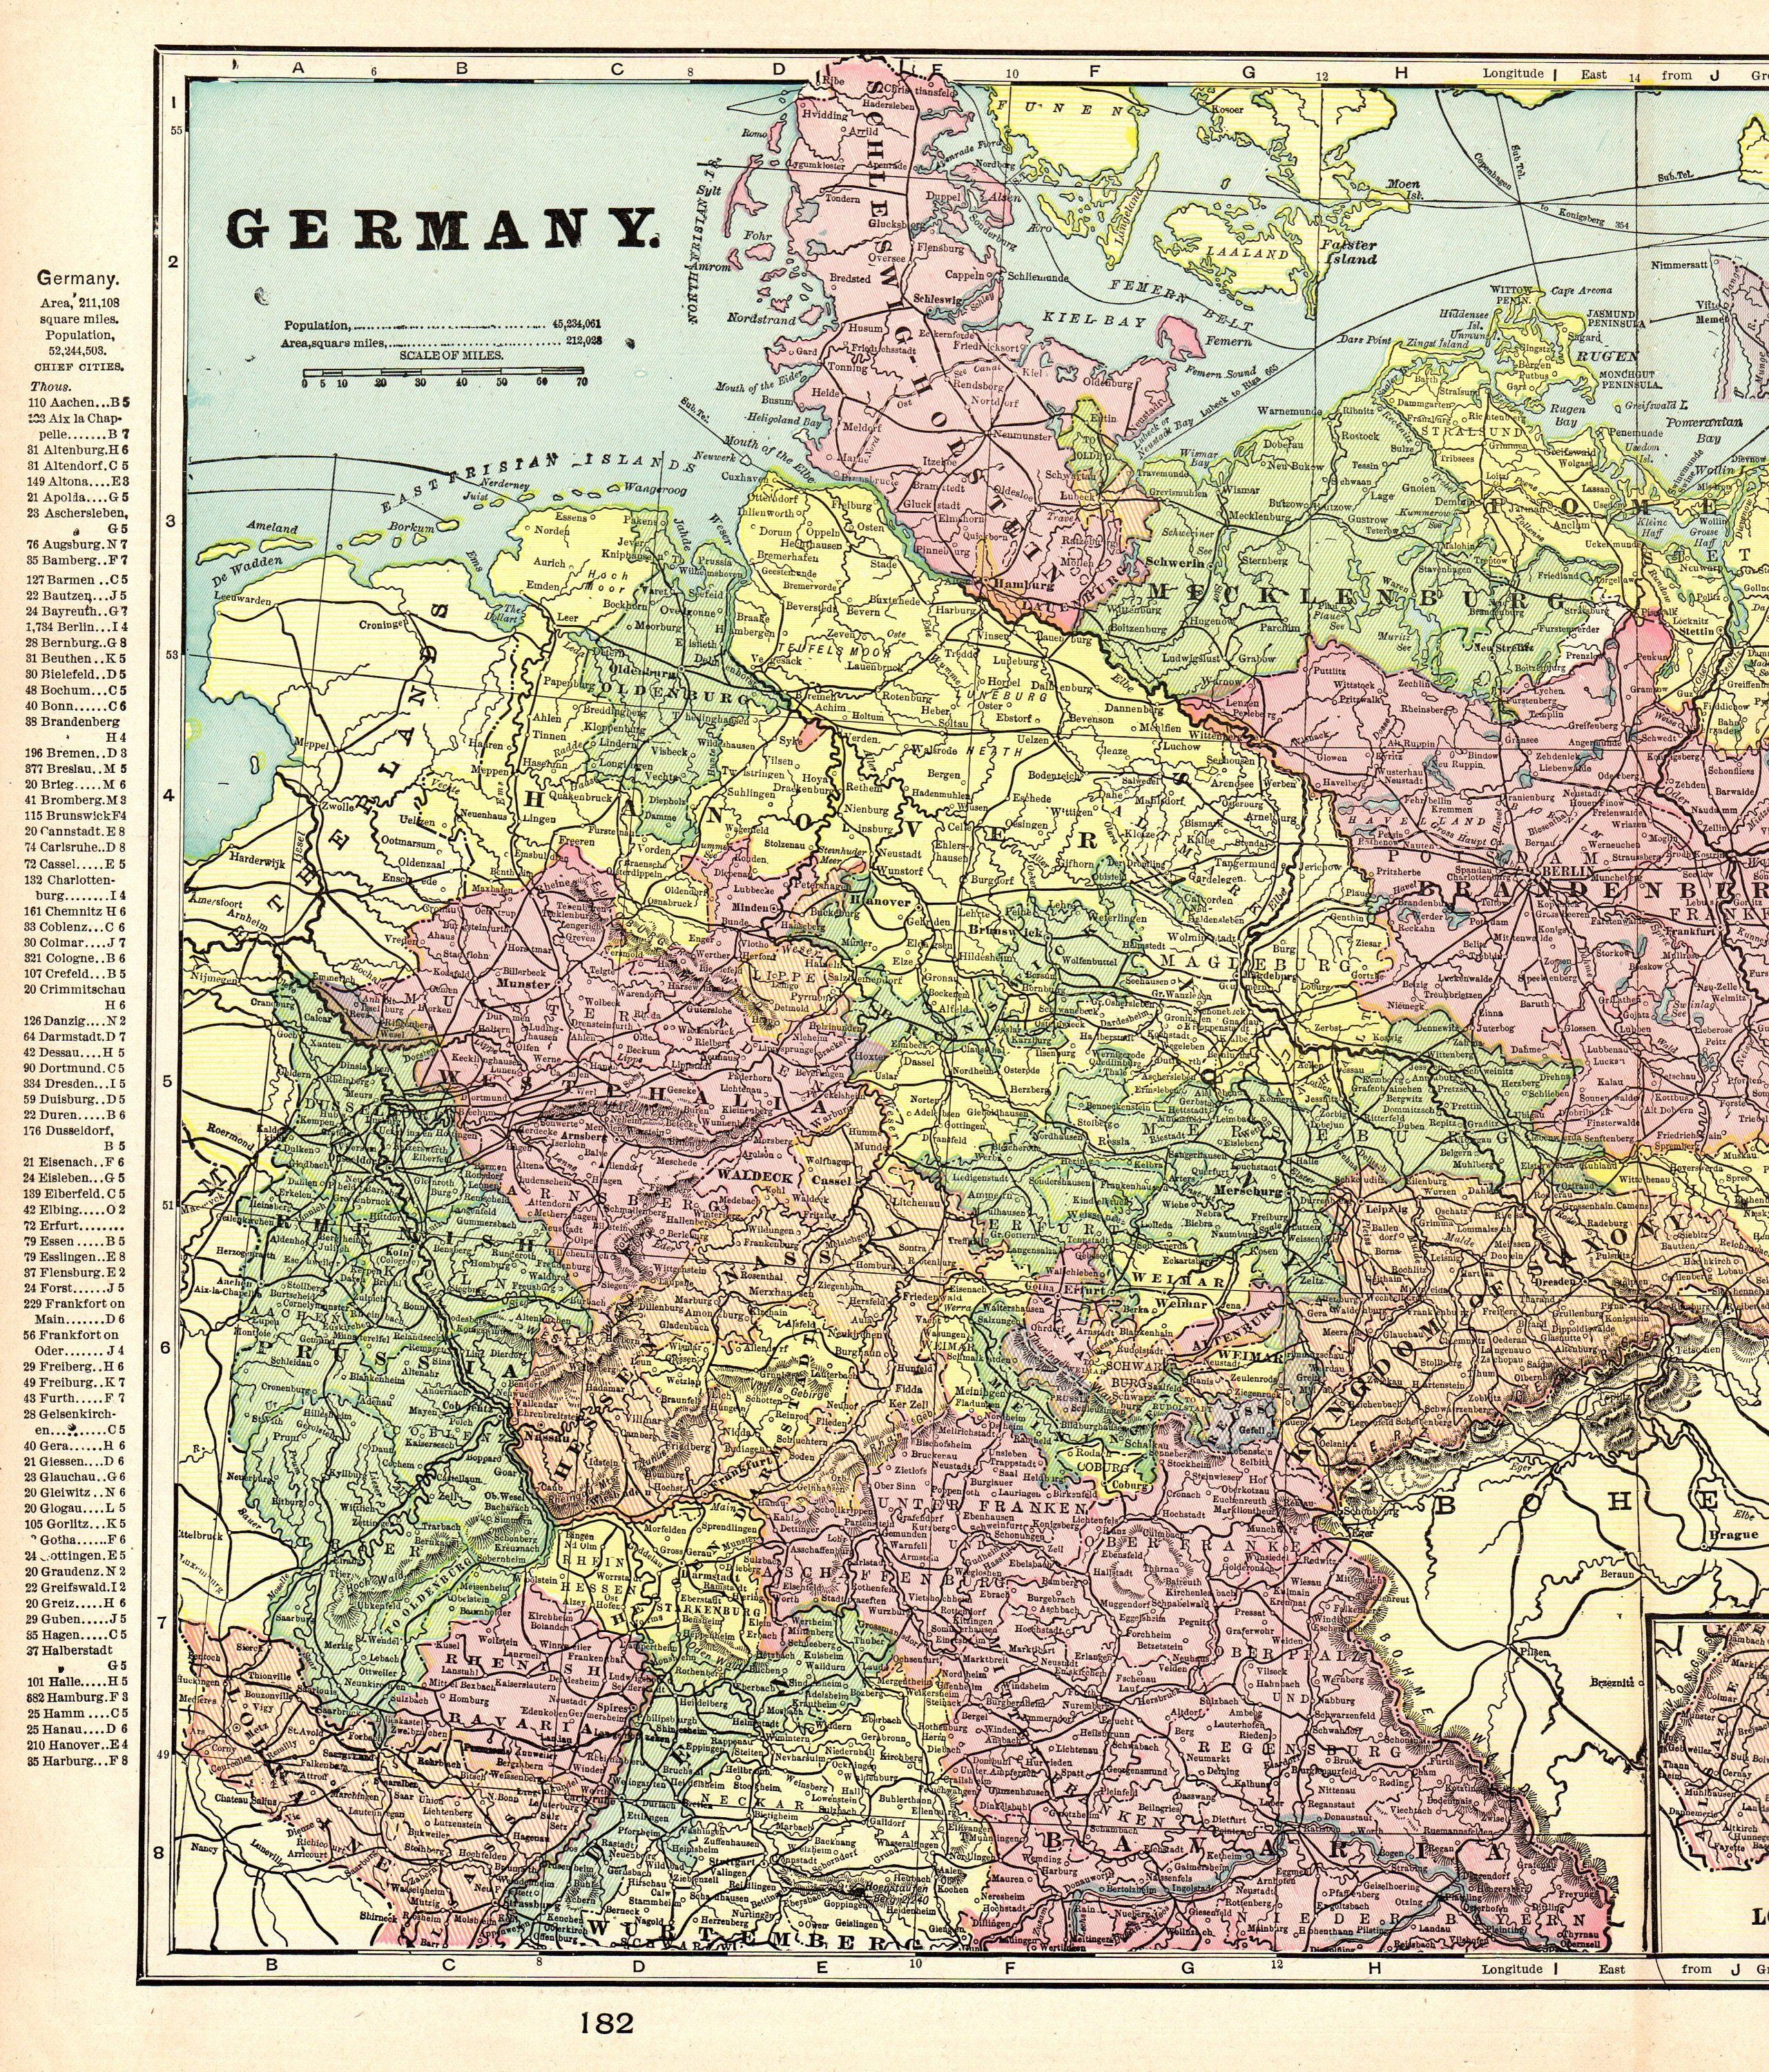 Map Of Germany 1900.1901 Antique Germany Map Vintage Map Of Germany Gallery Wall